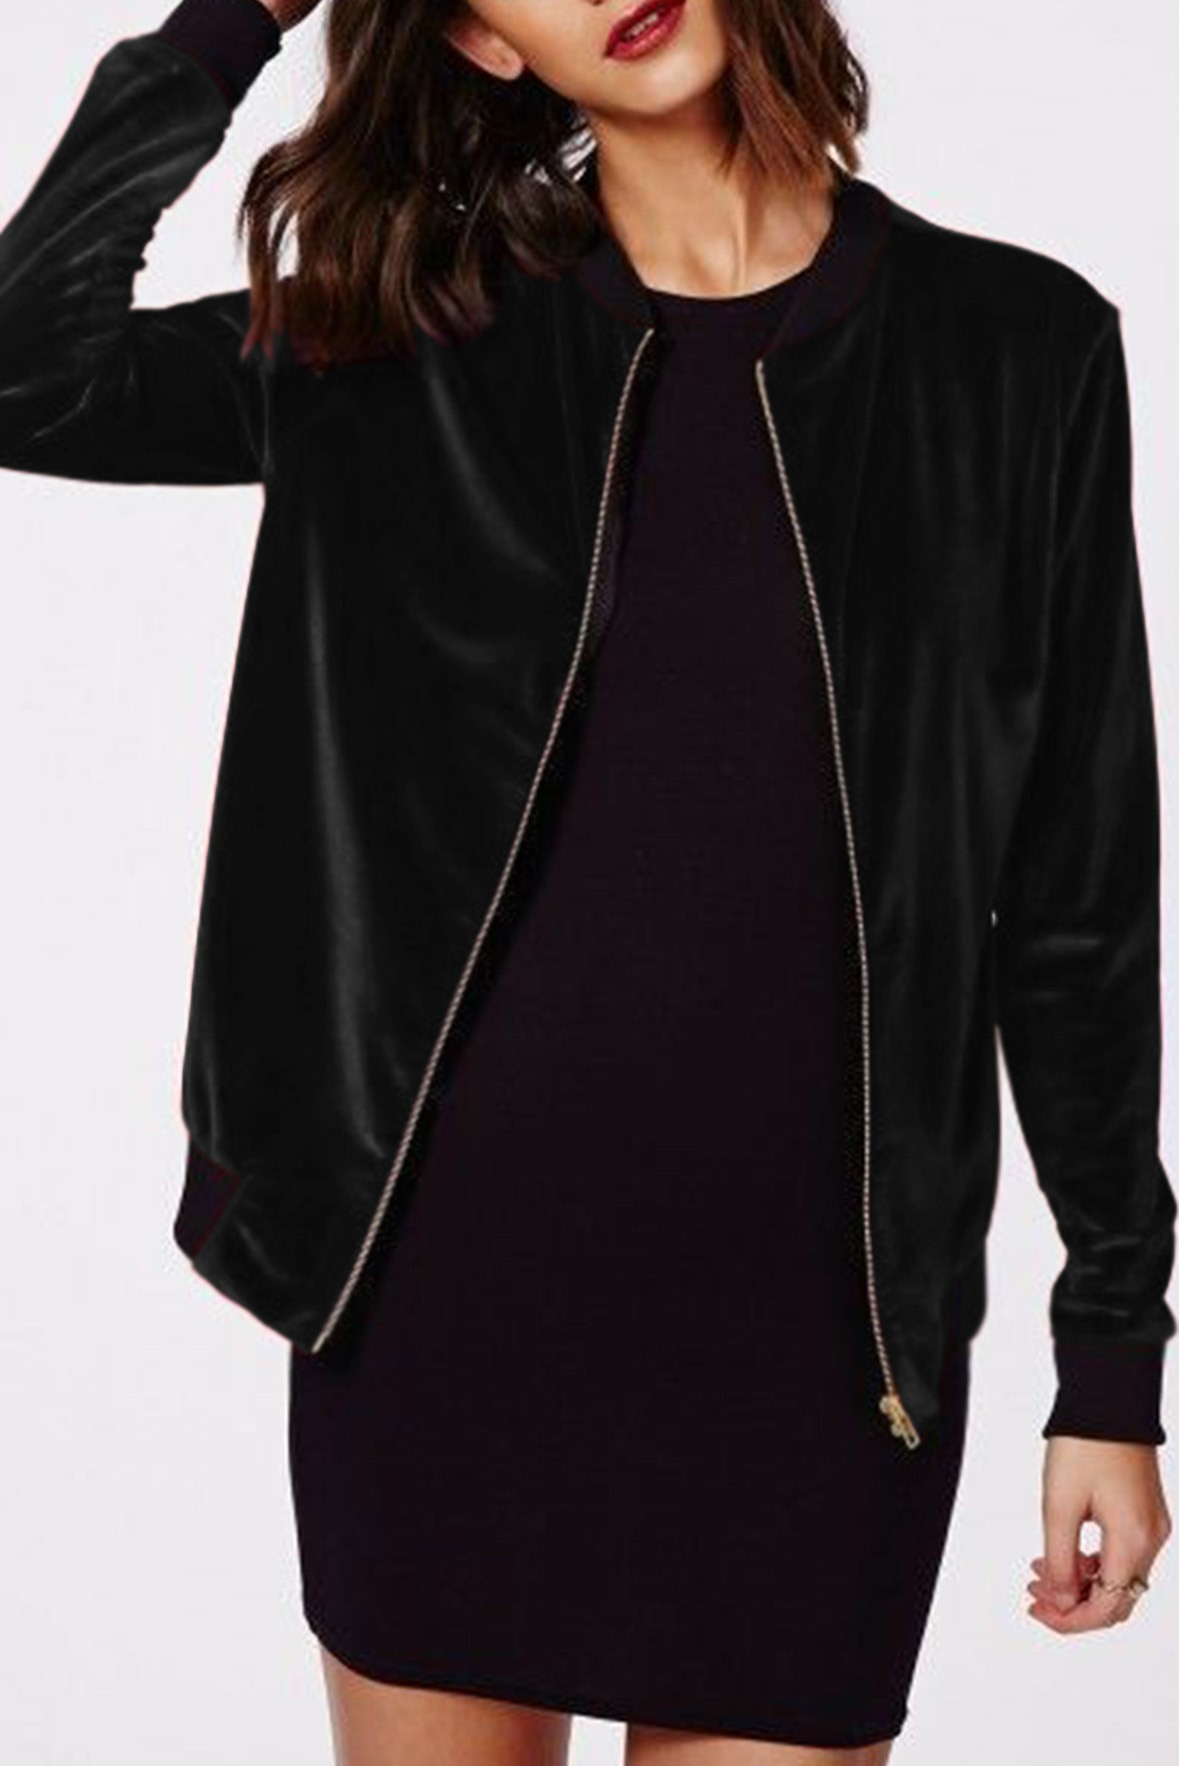 Life of the Party Jacket Black